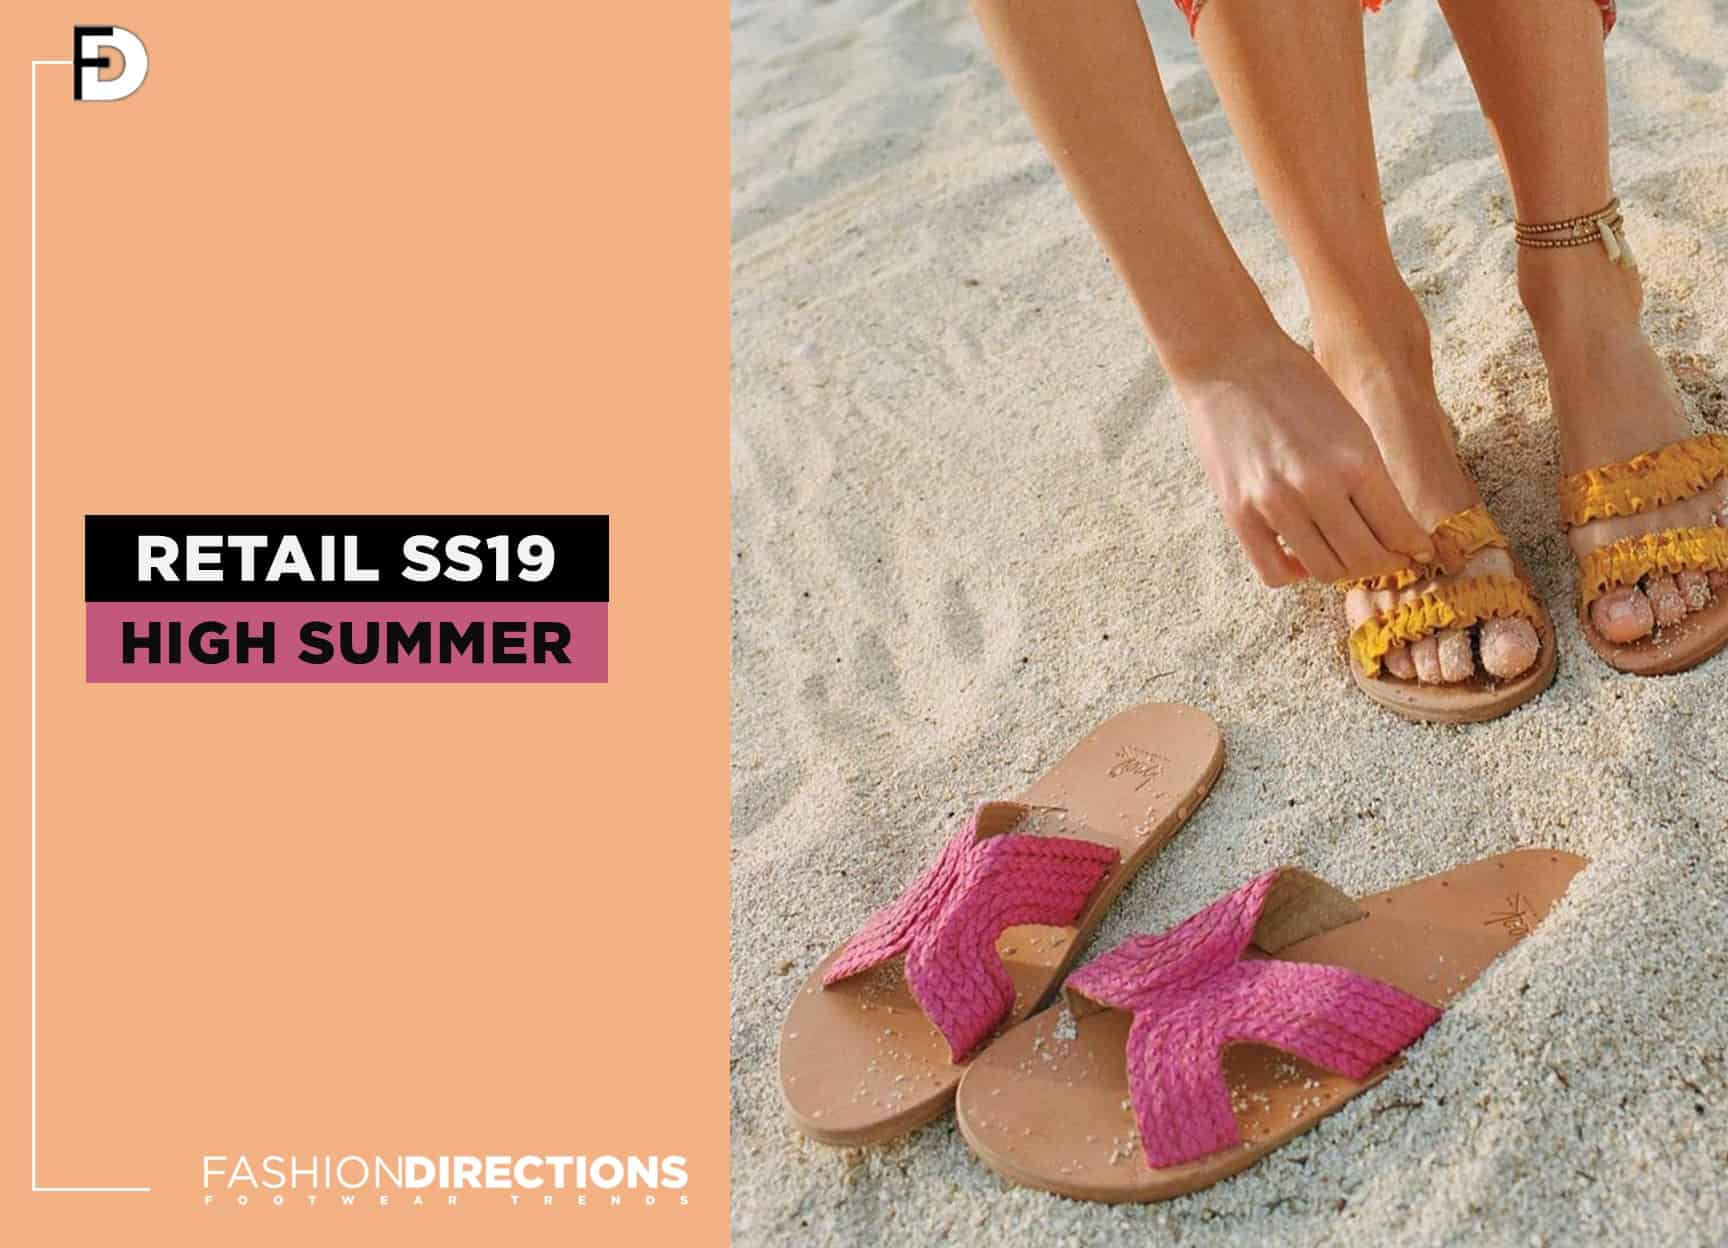 SS19 Womens shoes in retail stores June 2019 1